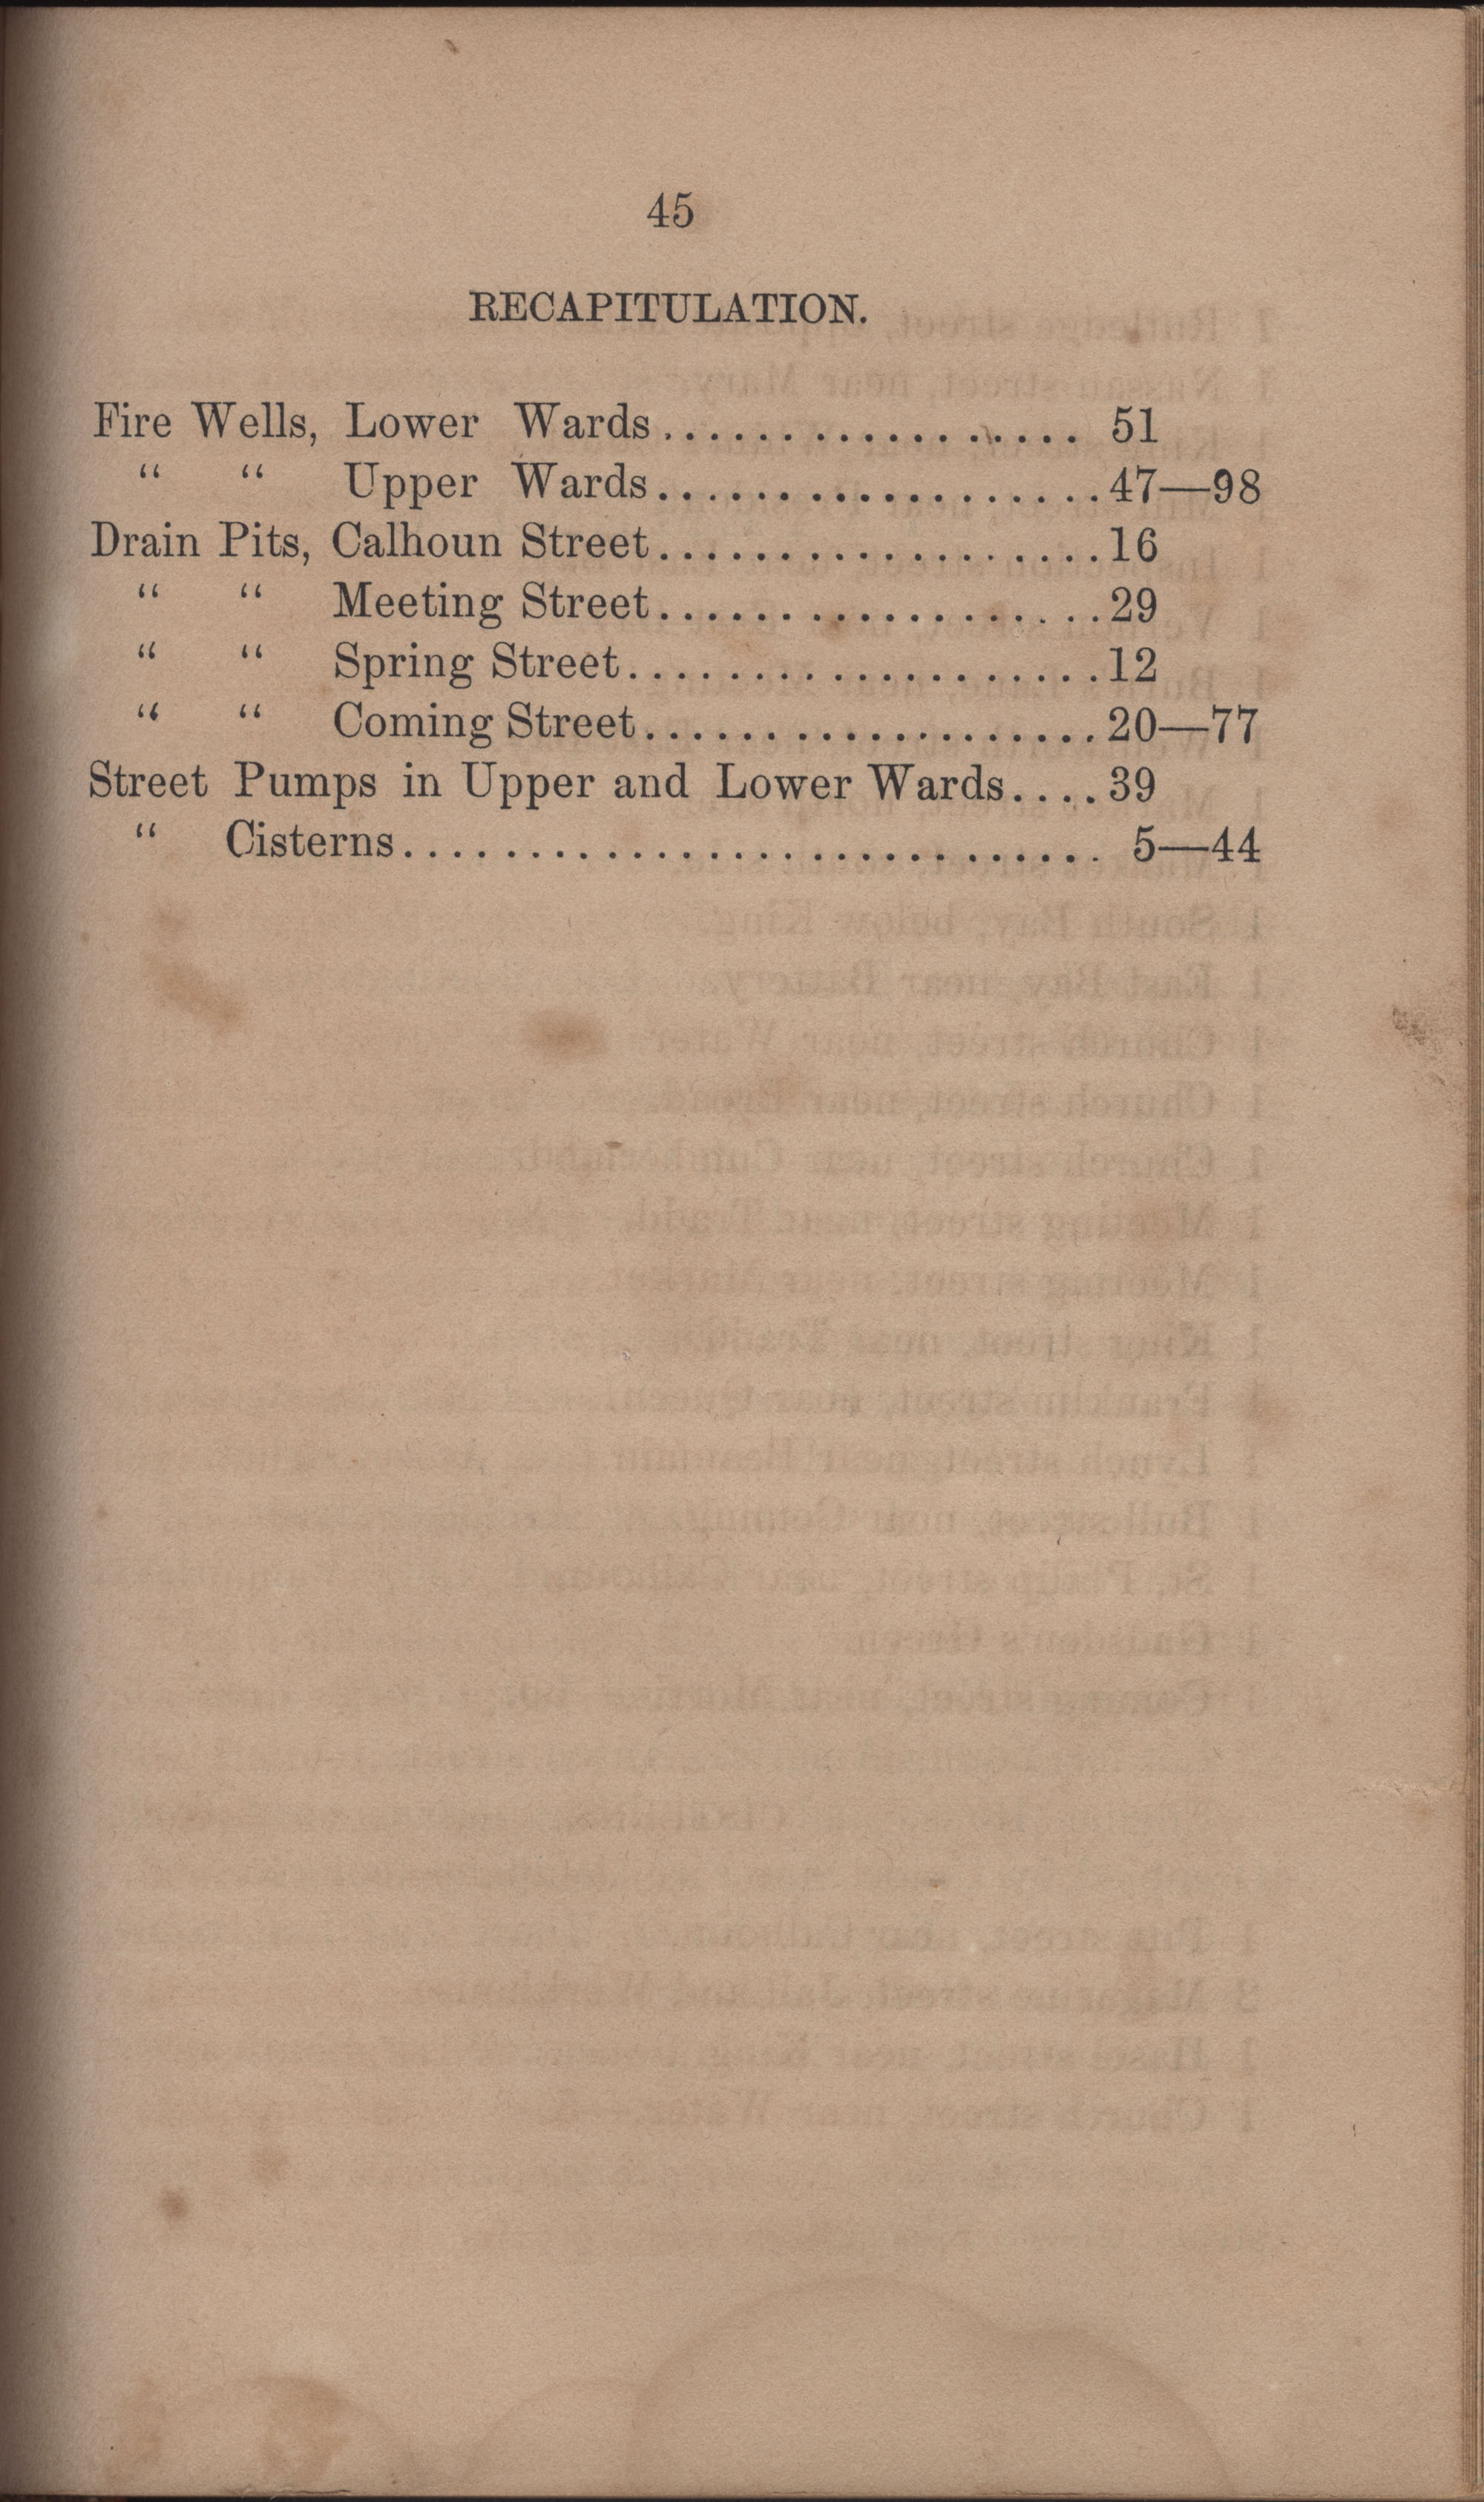 Annual Report of the Chief of the Fire Department of the City of Charleston, page 392